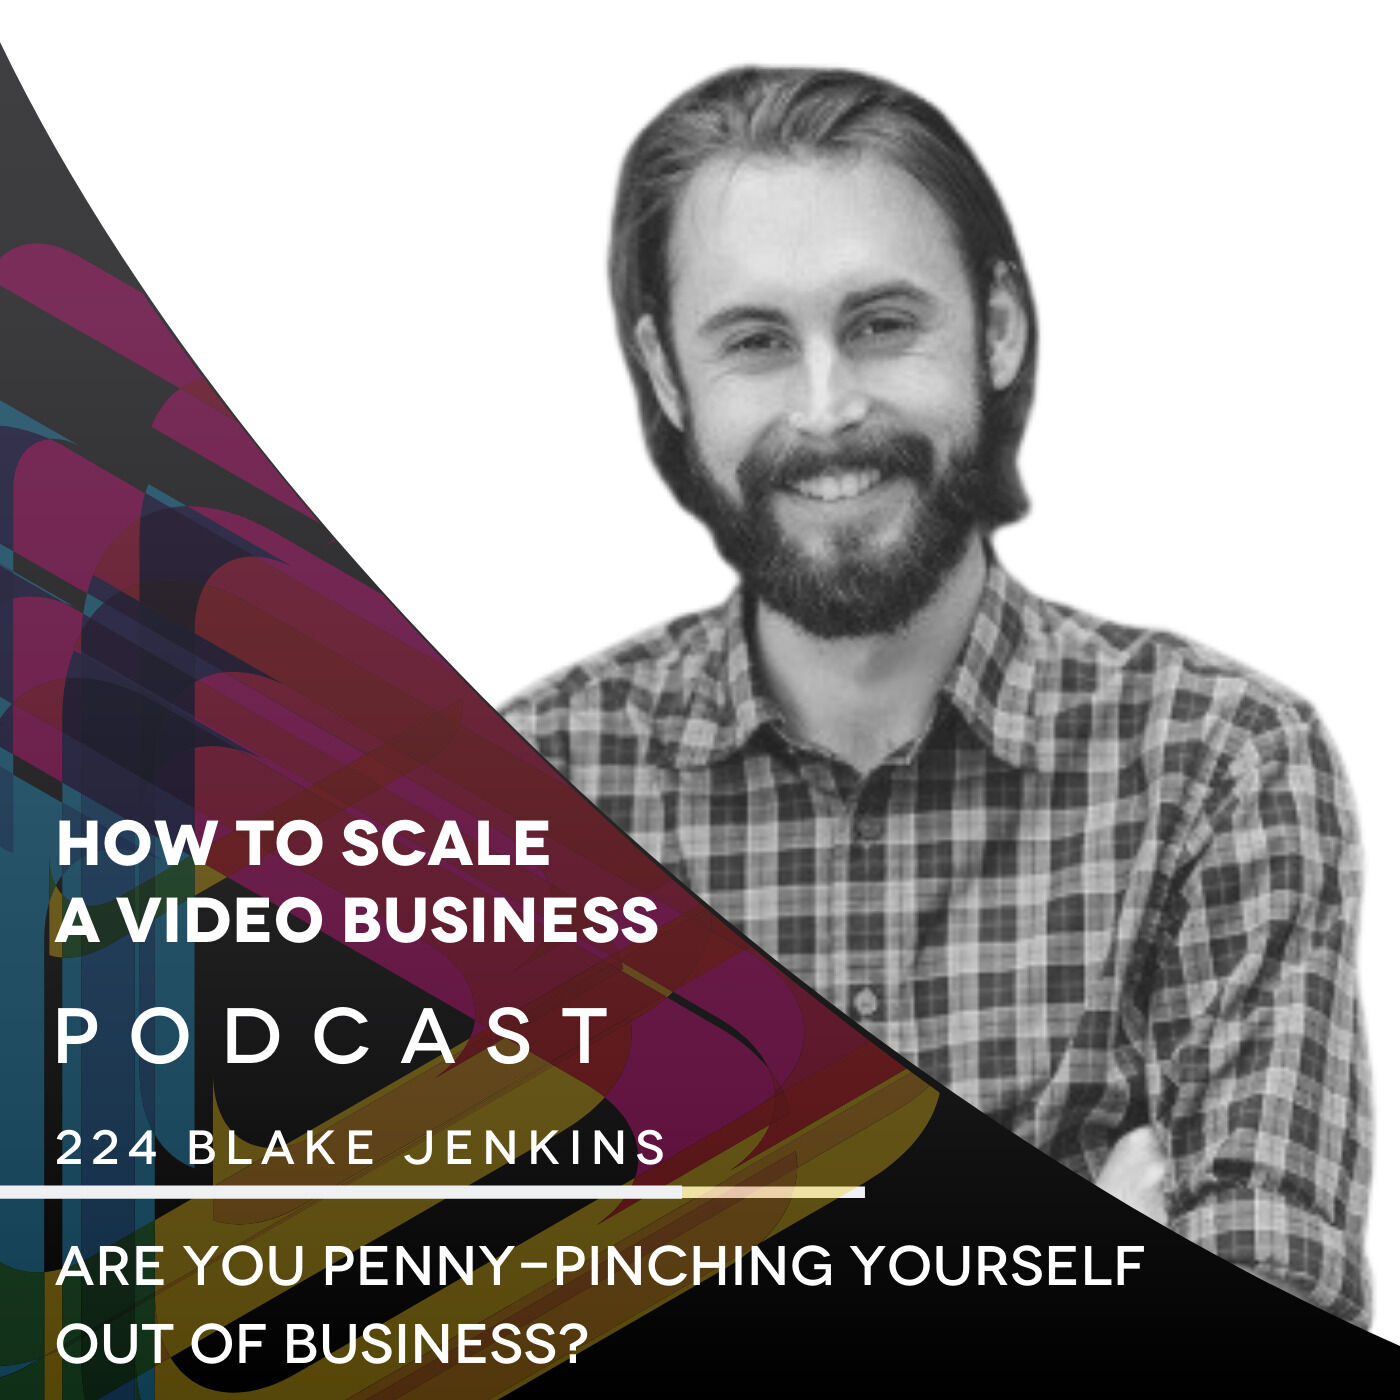 Are you penny-pinching yourself out of business? EP #224 - Blake Jenkins